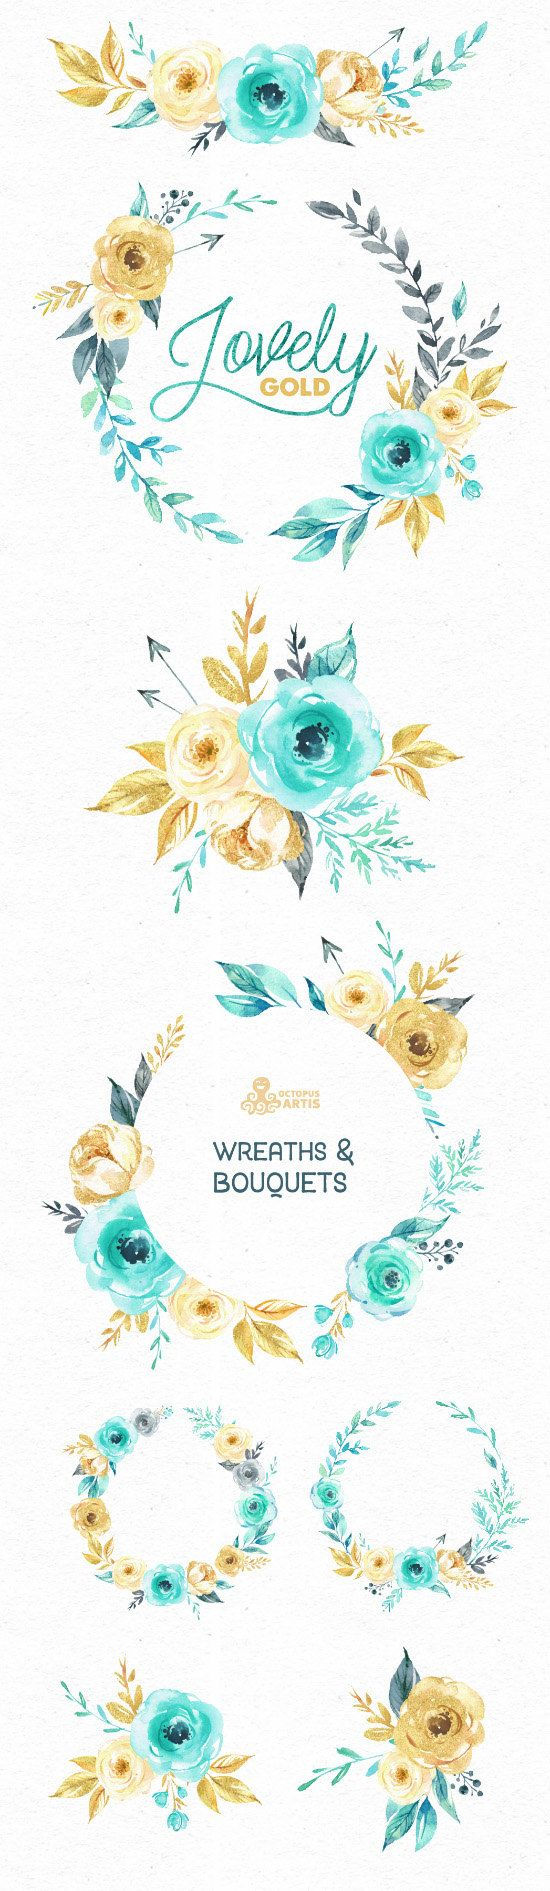 This set of hand painted watercolor floral Wreaths and Bouquets. Perfect graphic for wedding invitations, greeting cards, photos, posters, quotes and more. ----------------------------------------------------------------- INSTANT DOWNLOAD Once payment is cleared, you can download your files directly from your Etsy account. ----------------------------------------------------------------- This listing includes: 4 x Floral Wreaths in PNG (transparent background) size approx.: 14-11.3 in(3...